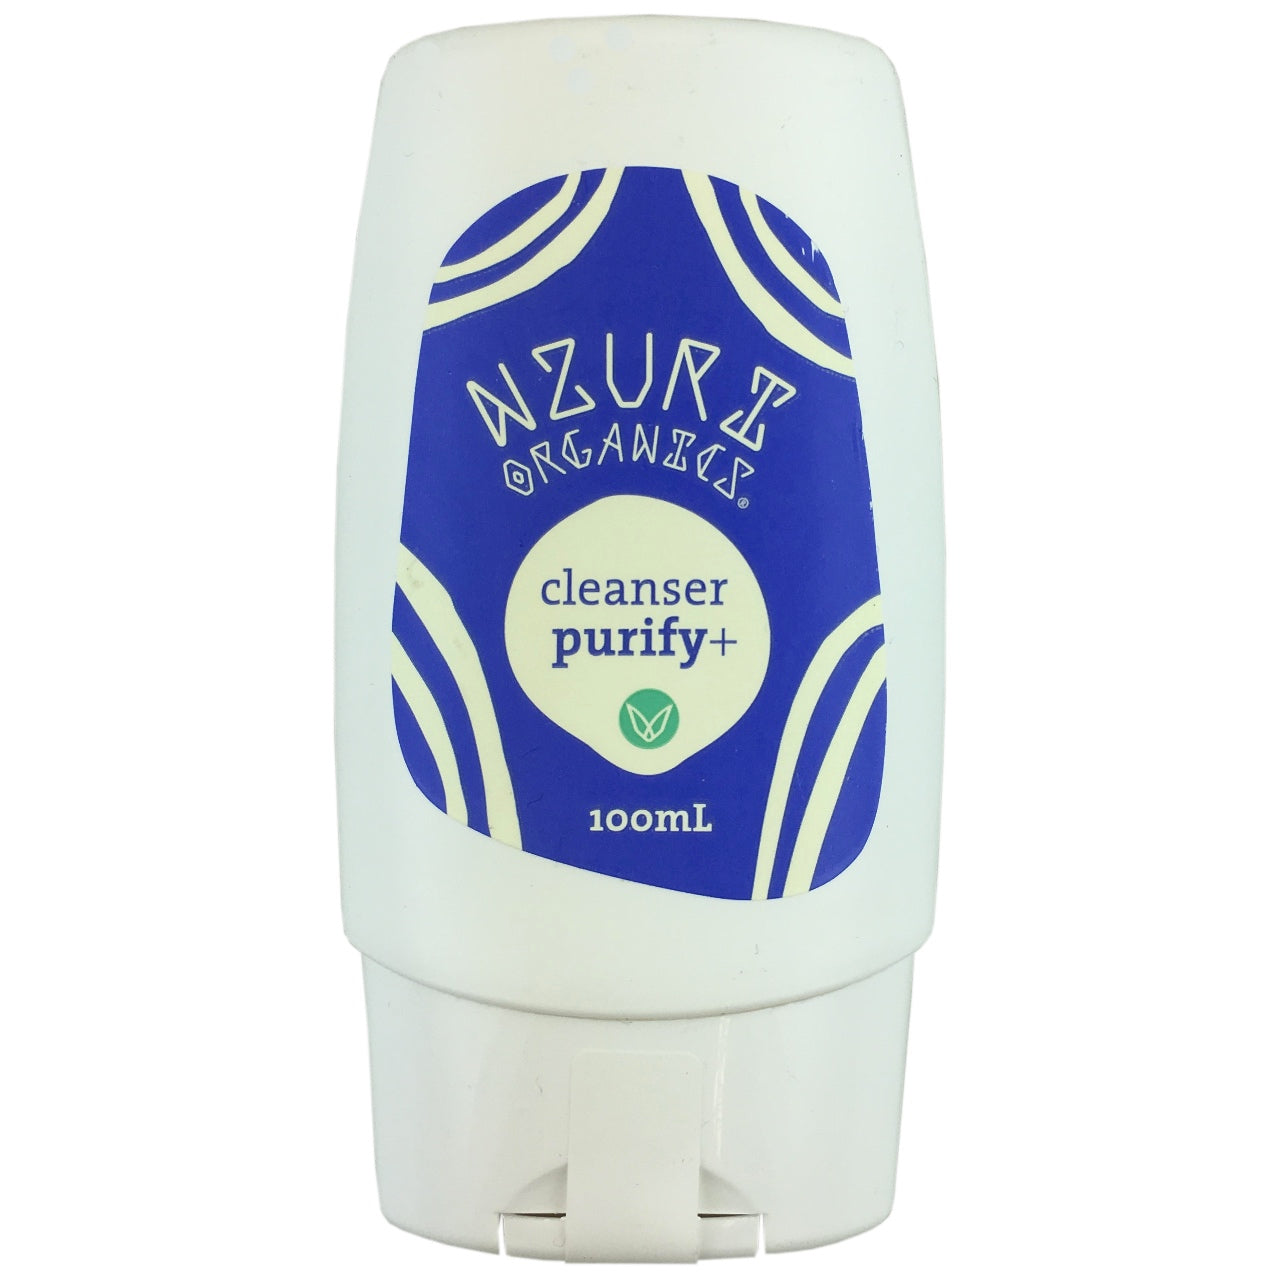 Nzuri Cleanser Purify+